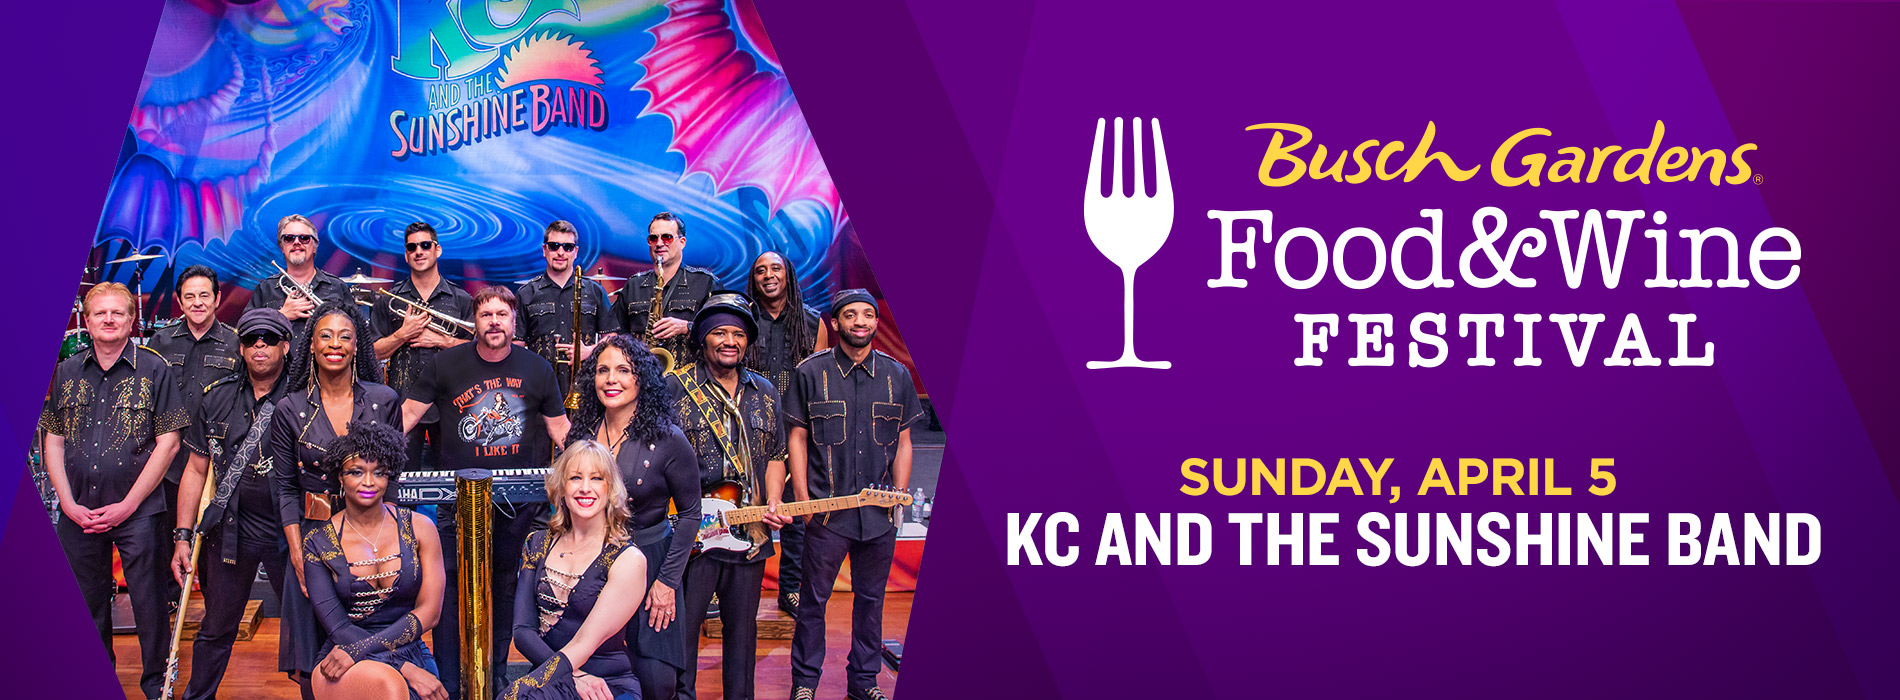 KC and the Sunshine Band at Busch Gardens Tampa Bay on Sunday, April 5 for the Food and Wine Festival